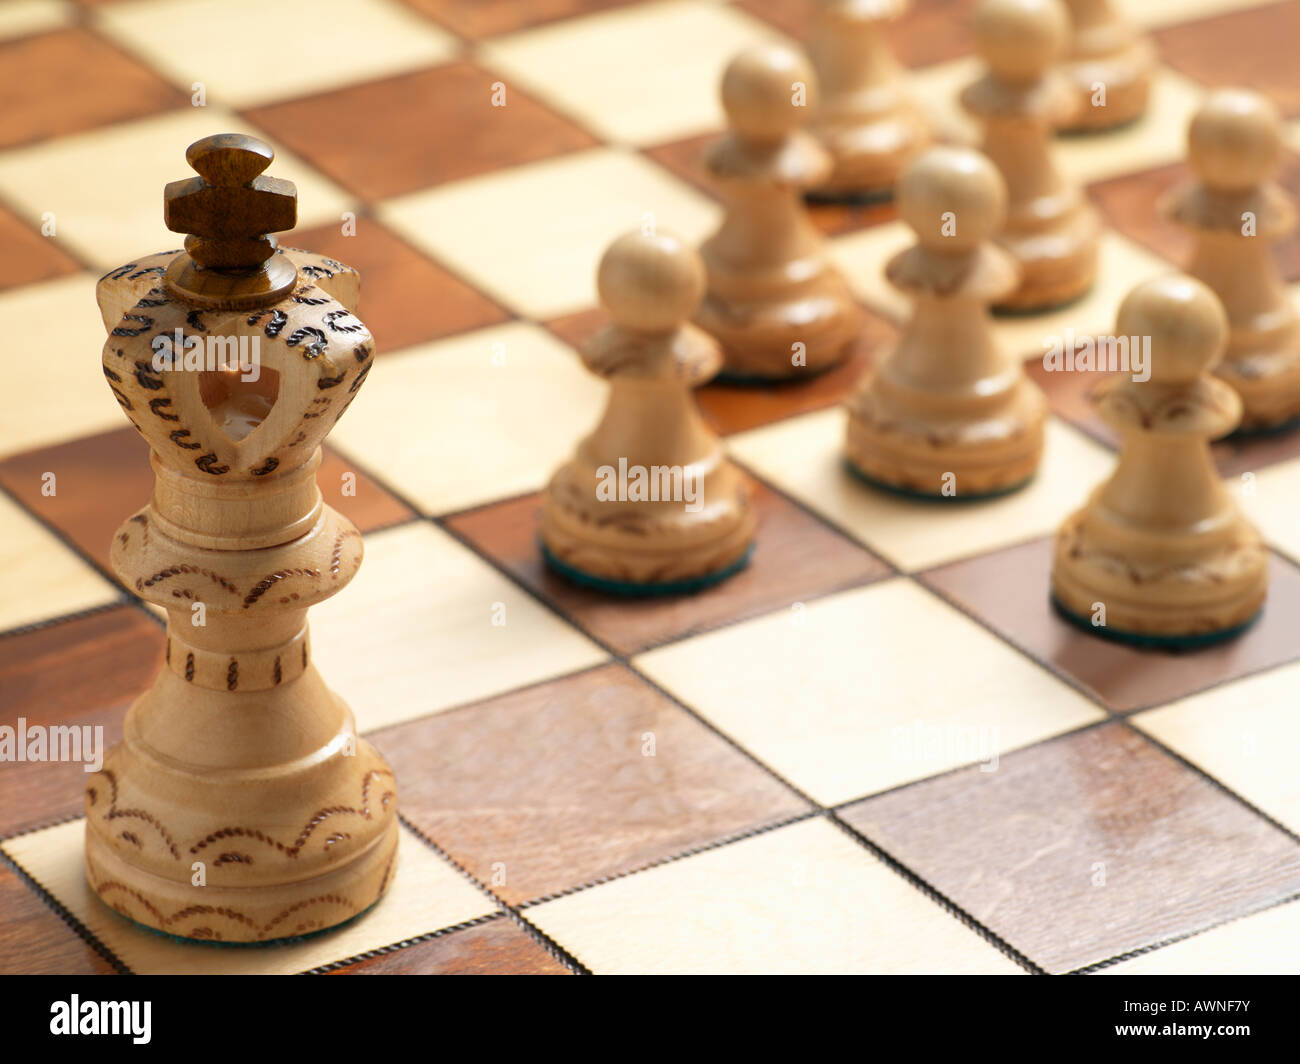 King and pawn chess pieces - Stock Image